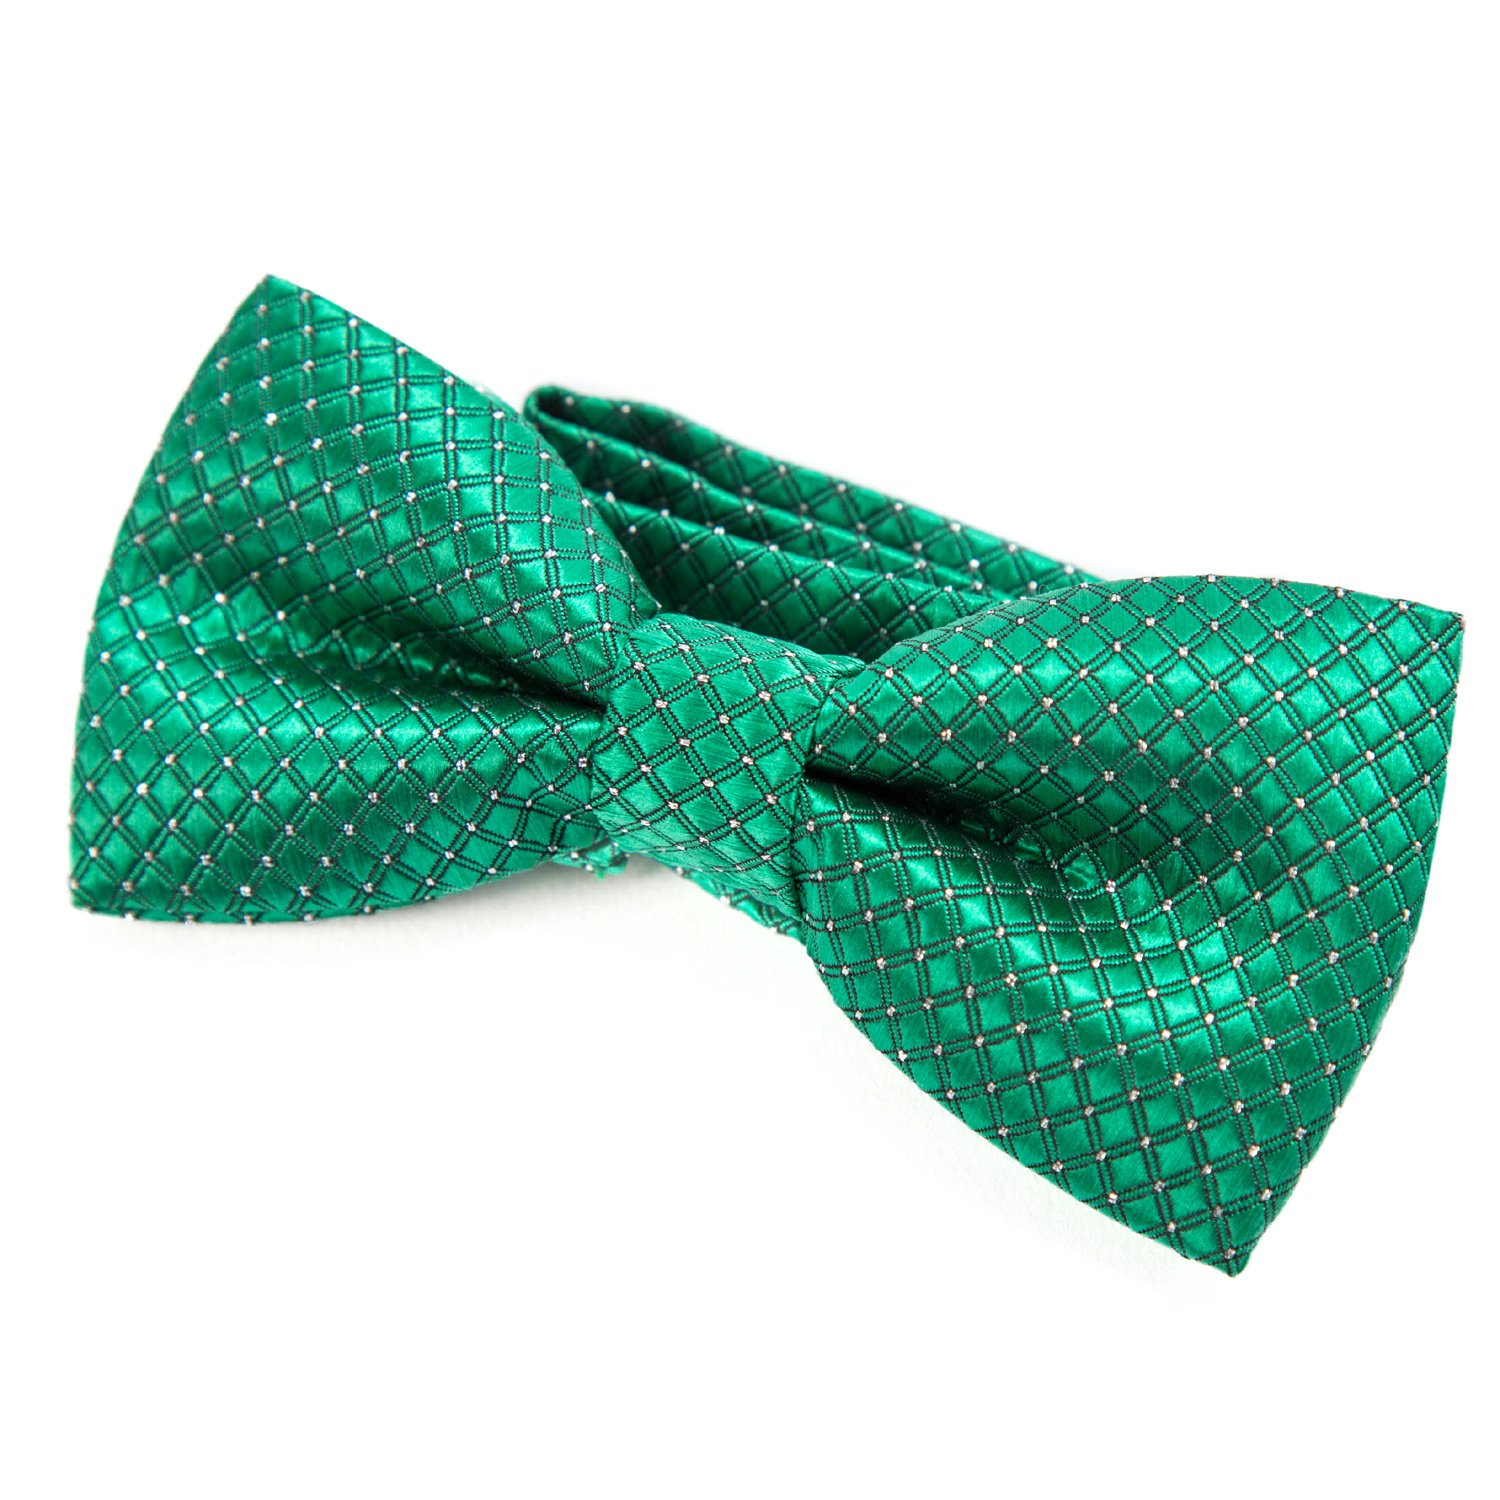 DonDon comfortable Boys bow tie with polka dots pre-tied with adjustable length silk look for children in various colors K-FLG25